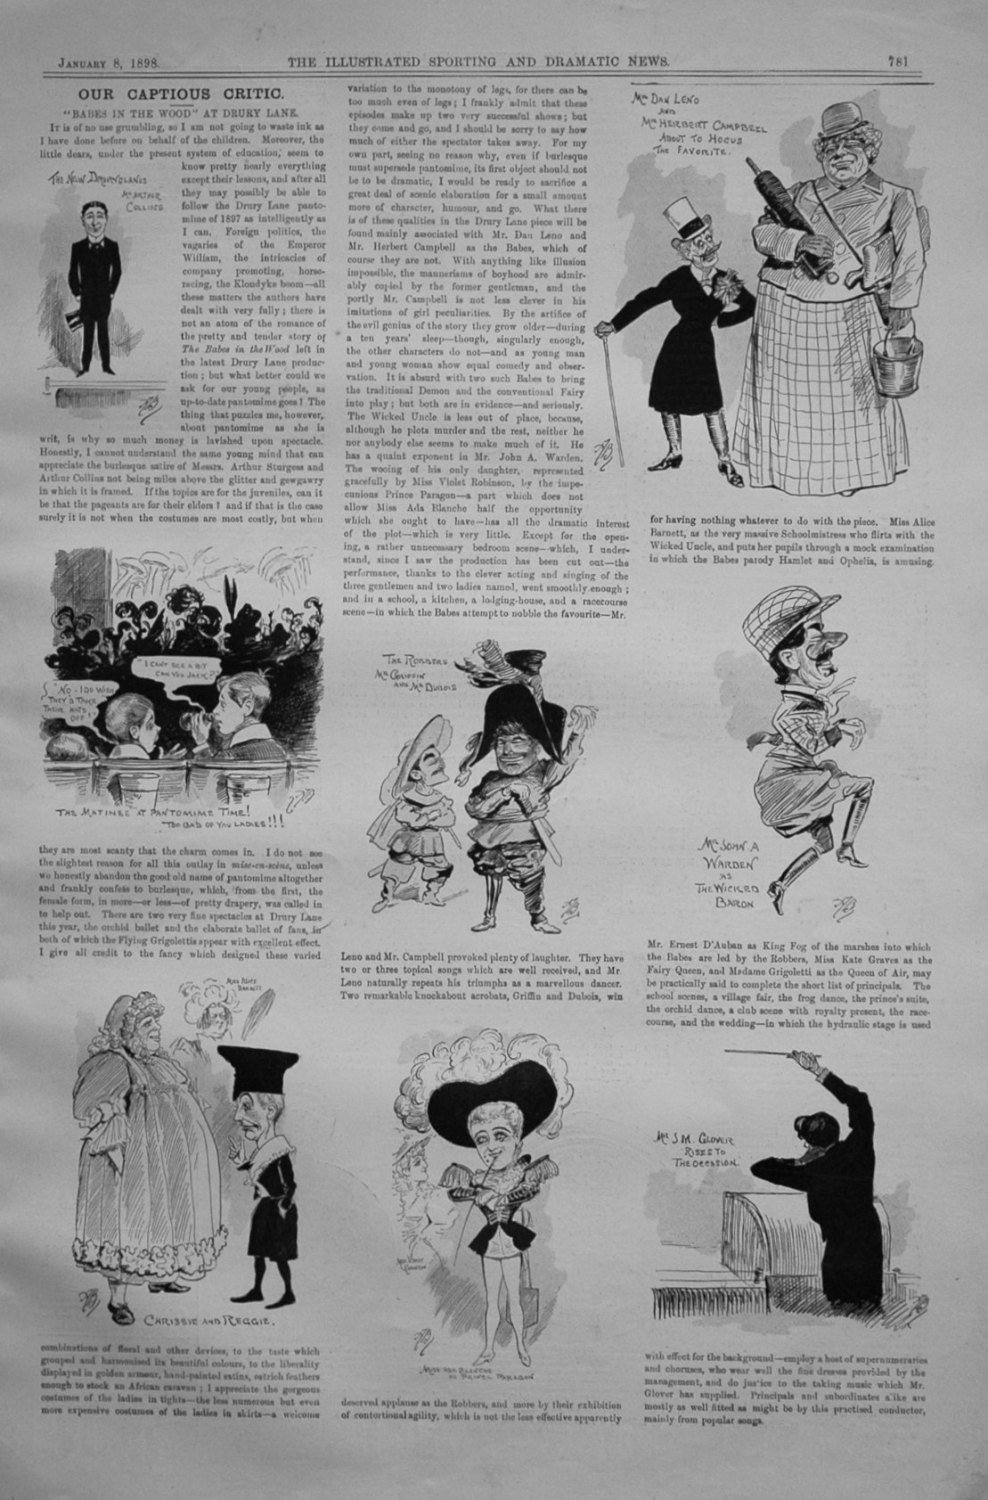 Our Captious Critic, January 8th 1898.